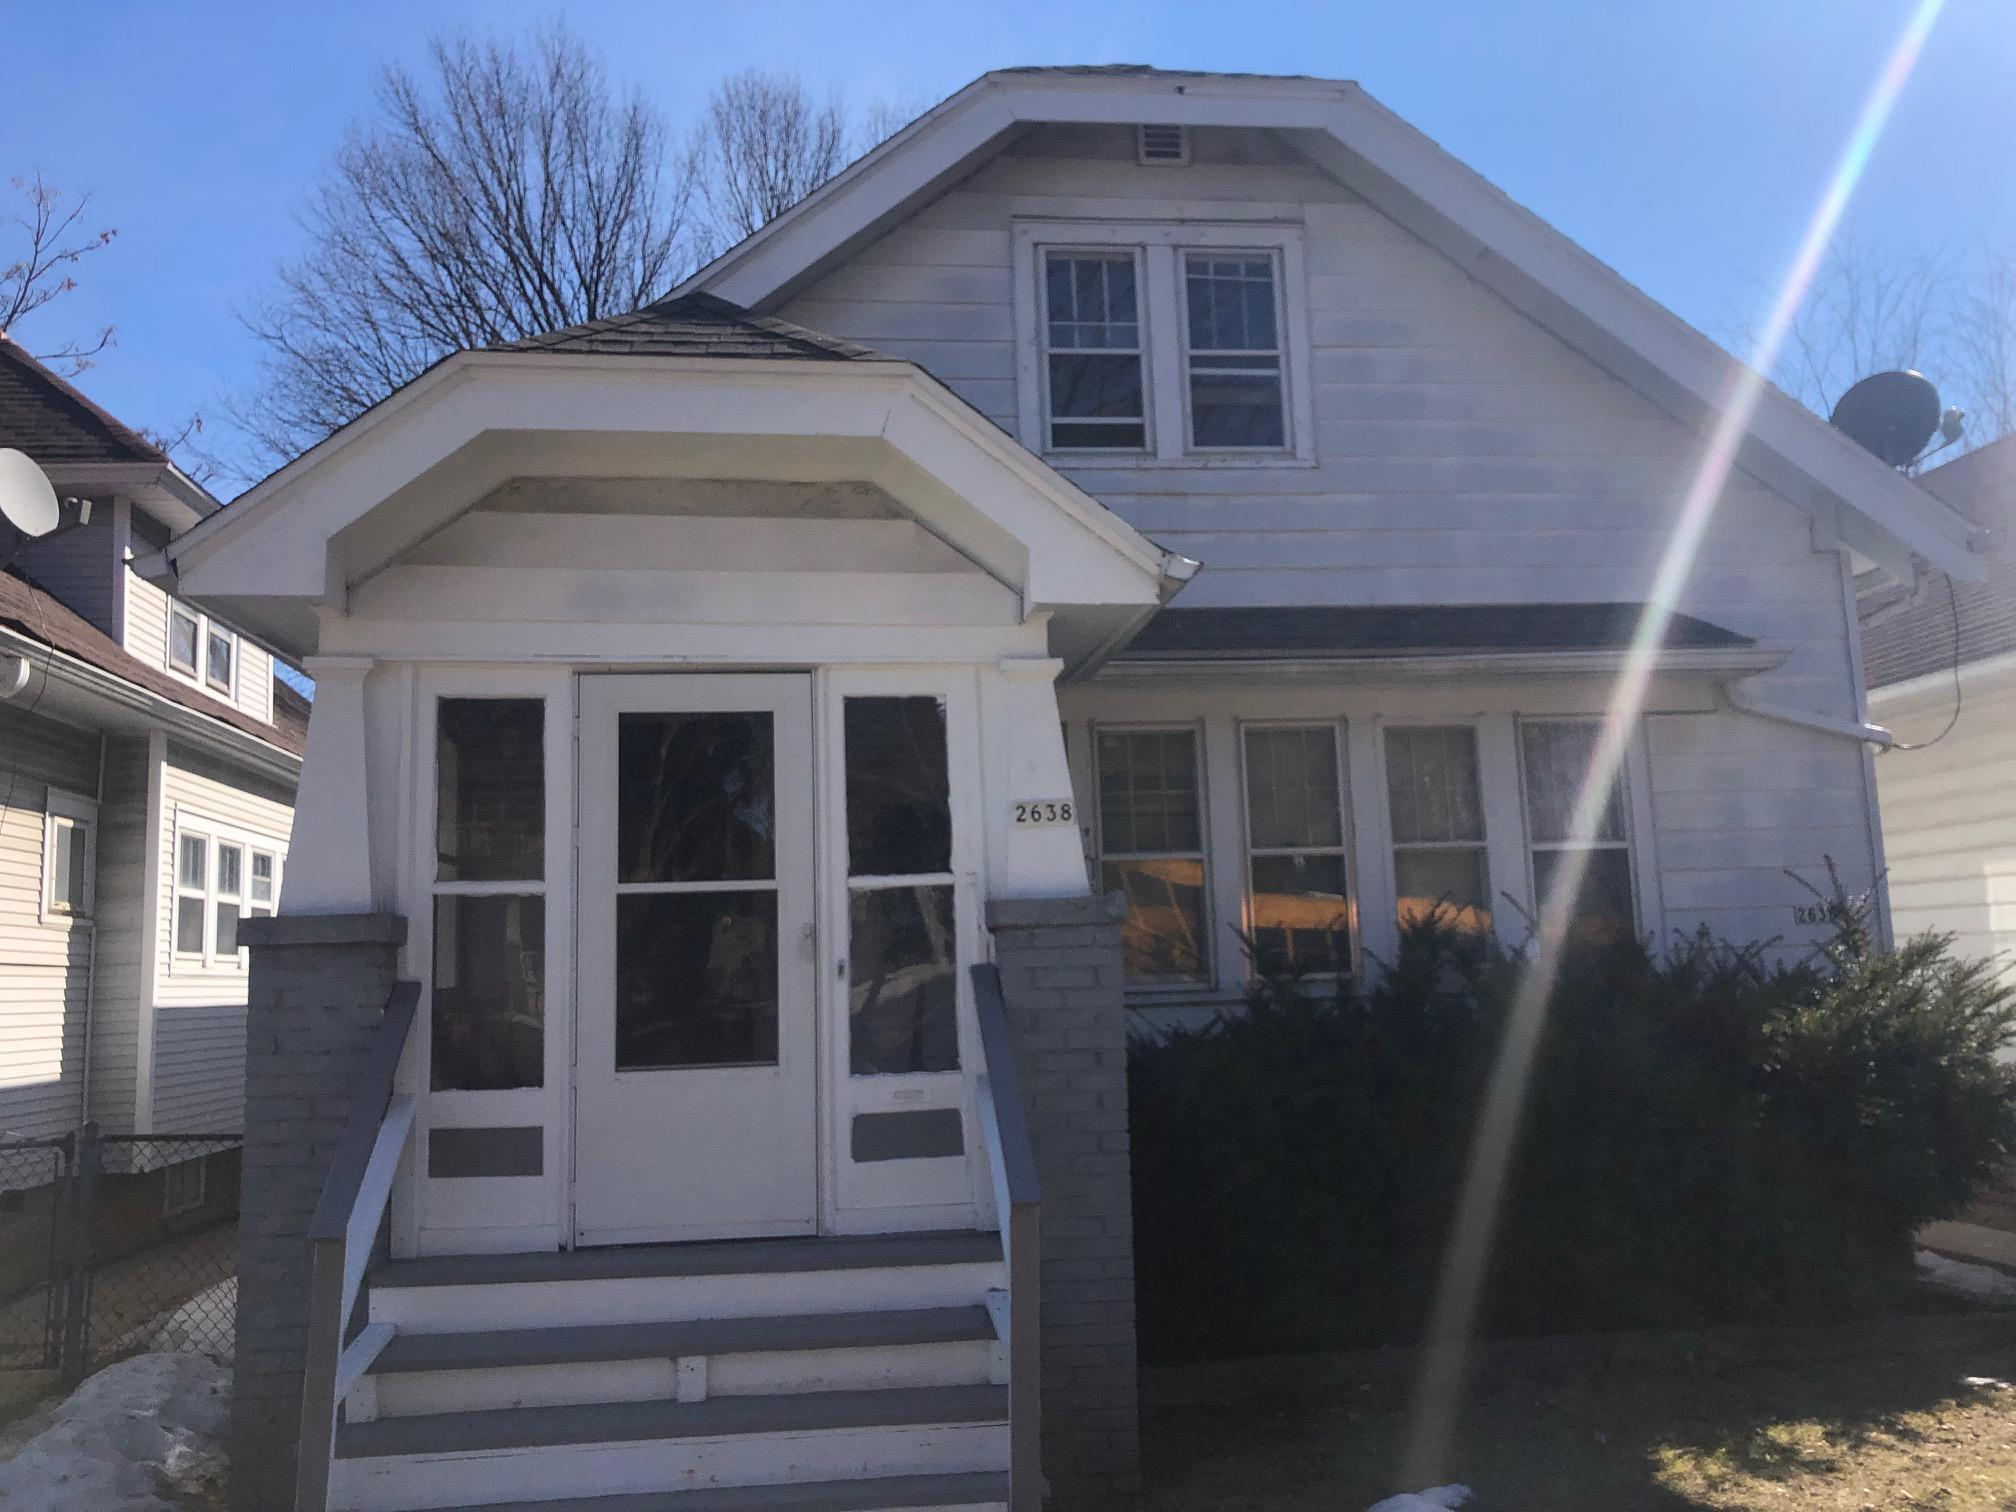 2638-2638A 56th St, Milwaukee, Wisconsin 53210, 2 Bedrooms Bedrooms, 4 Rooms Rooms,1 BathroomBathrooms,Two-Family,For Sale,56th St,1,1628438